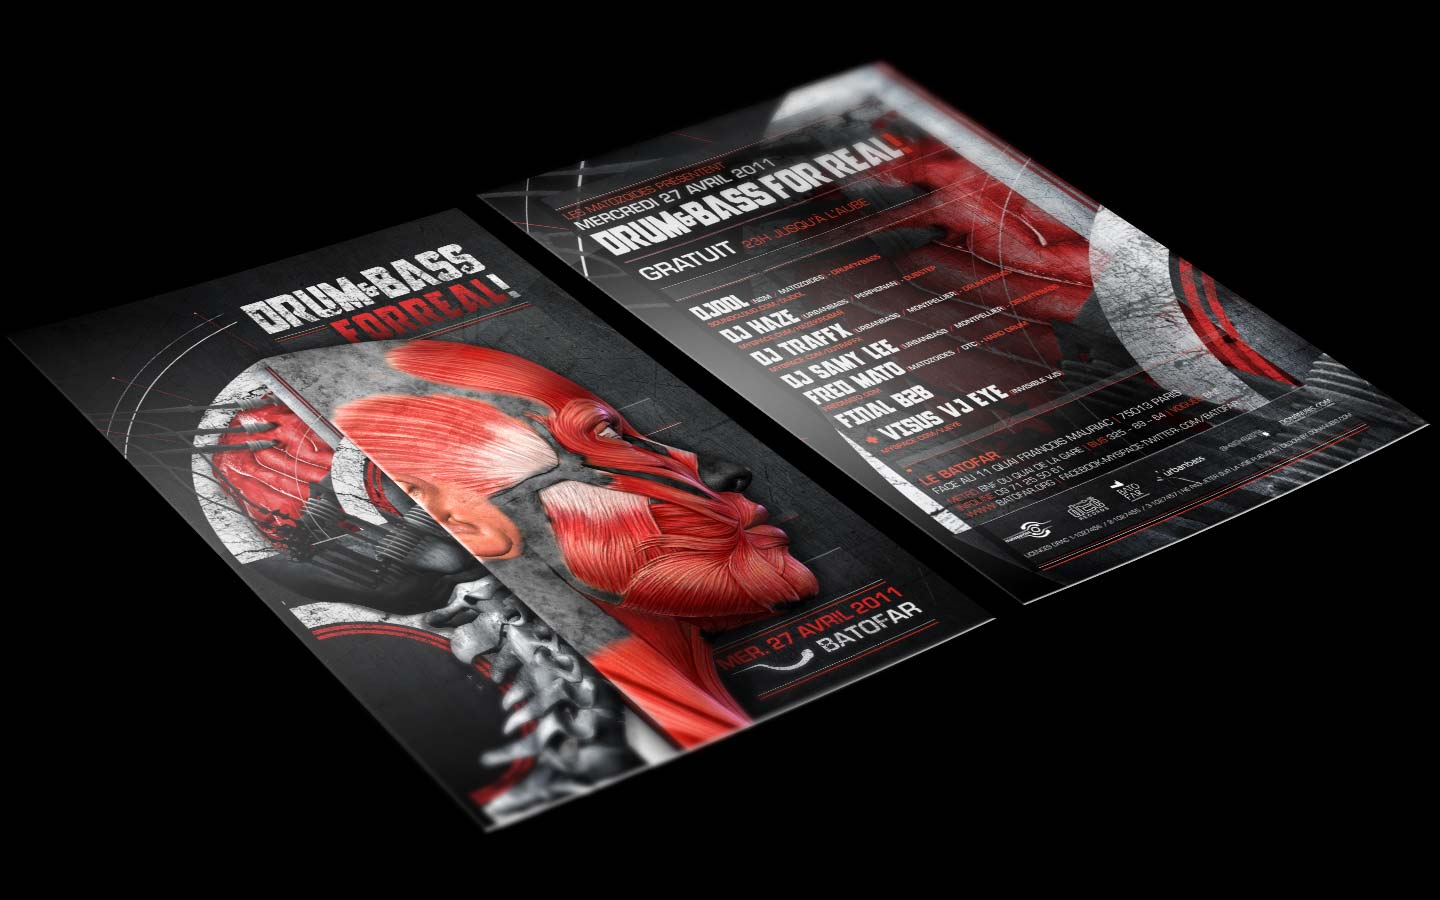 Drum And Bass For Real - Laurent Lemoigne - Donanubis - Don Anubis - Graphic Design - Flyer - Matozoides - Batofar - Paris - Art - Music - Electronic - Party - Event - Flyer - Poster - Industrial - Dark - Brain - Electric - Biomechanic - Biomechanik - Biomechanical - Flesh - Muscle - Anatomy - Bone - Backbone - Alternative - Underground - Geneva - Switzerland - Drum and Bass - d'n'b - Dubstep - Hard Drum - Djool / NSM - Dj Haze / Urbanbass - Dj Traffx / Urbanbass - Dj Samy Lee / Urbanbass - Fred Mato / Matozoides / DTC Records / 4real - Metal - Hard - Rock - Death - Band - Illustration